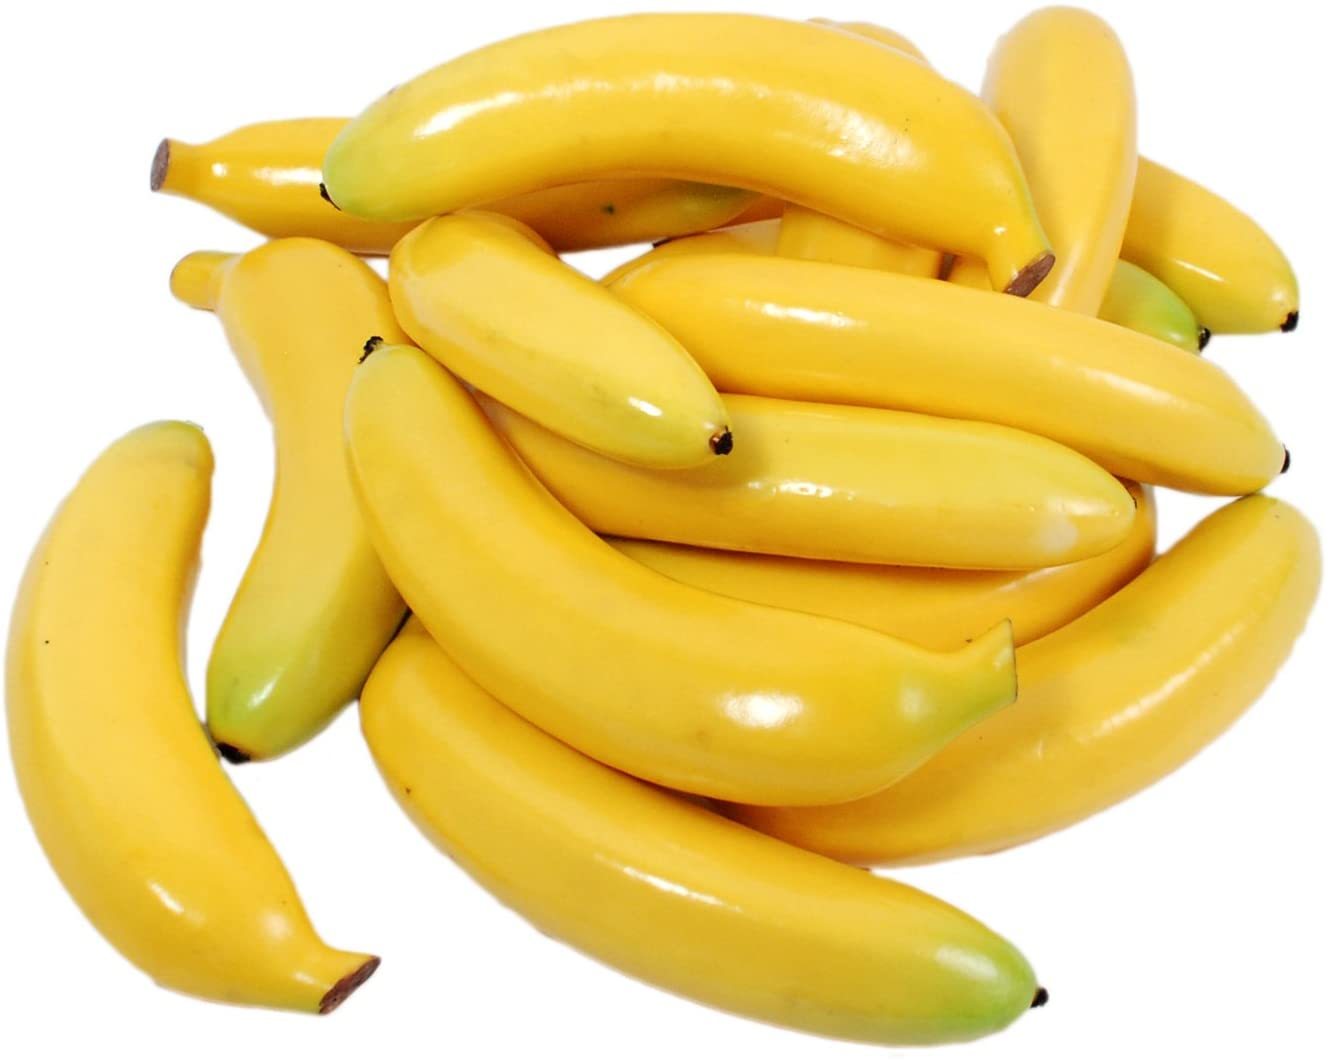 kieragrace Decorative Fruit Vase Fillers, 15 Bananas